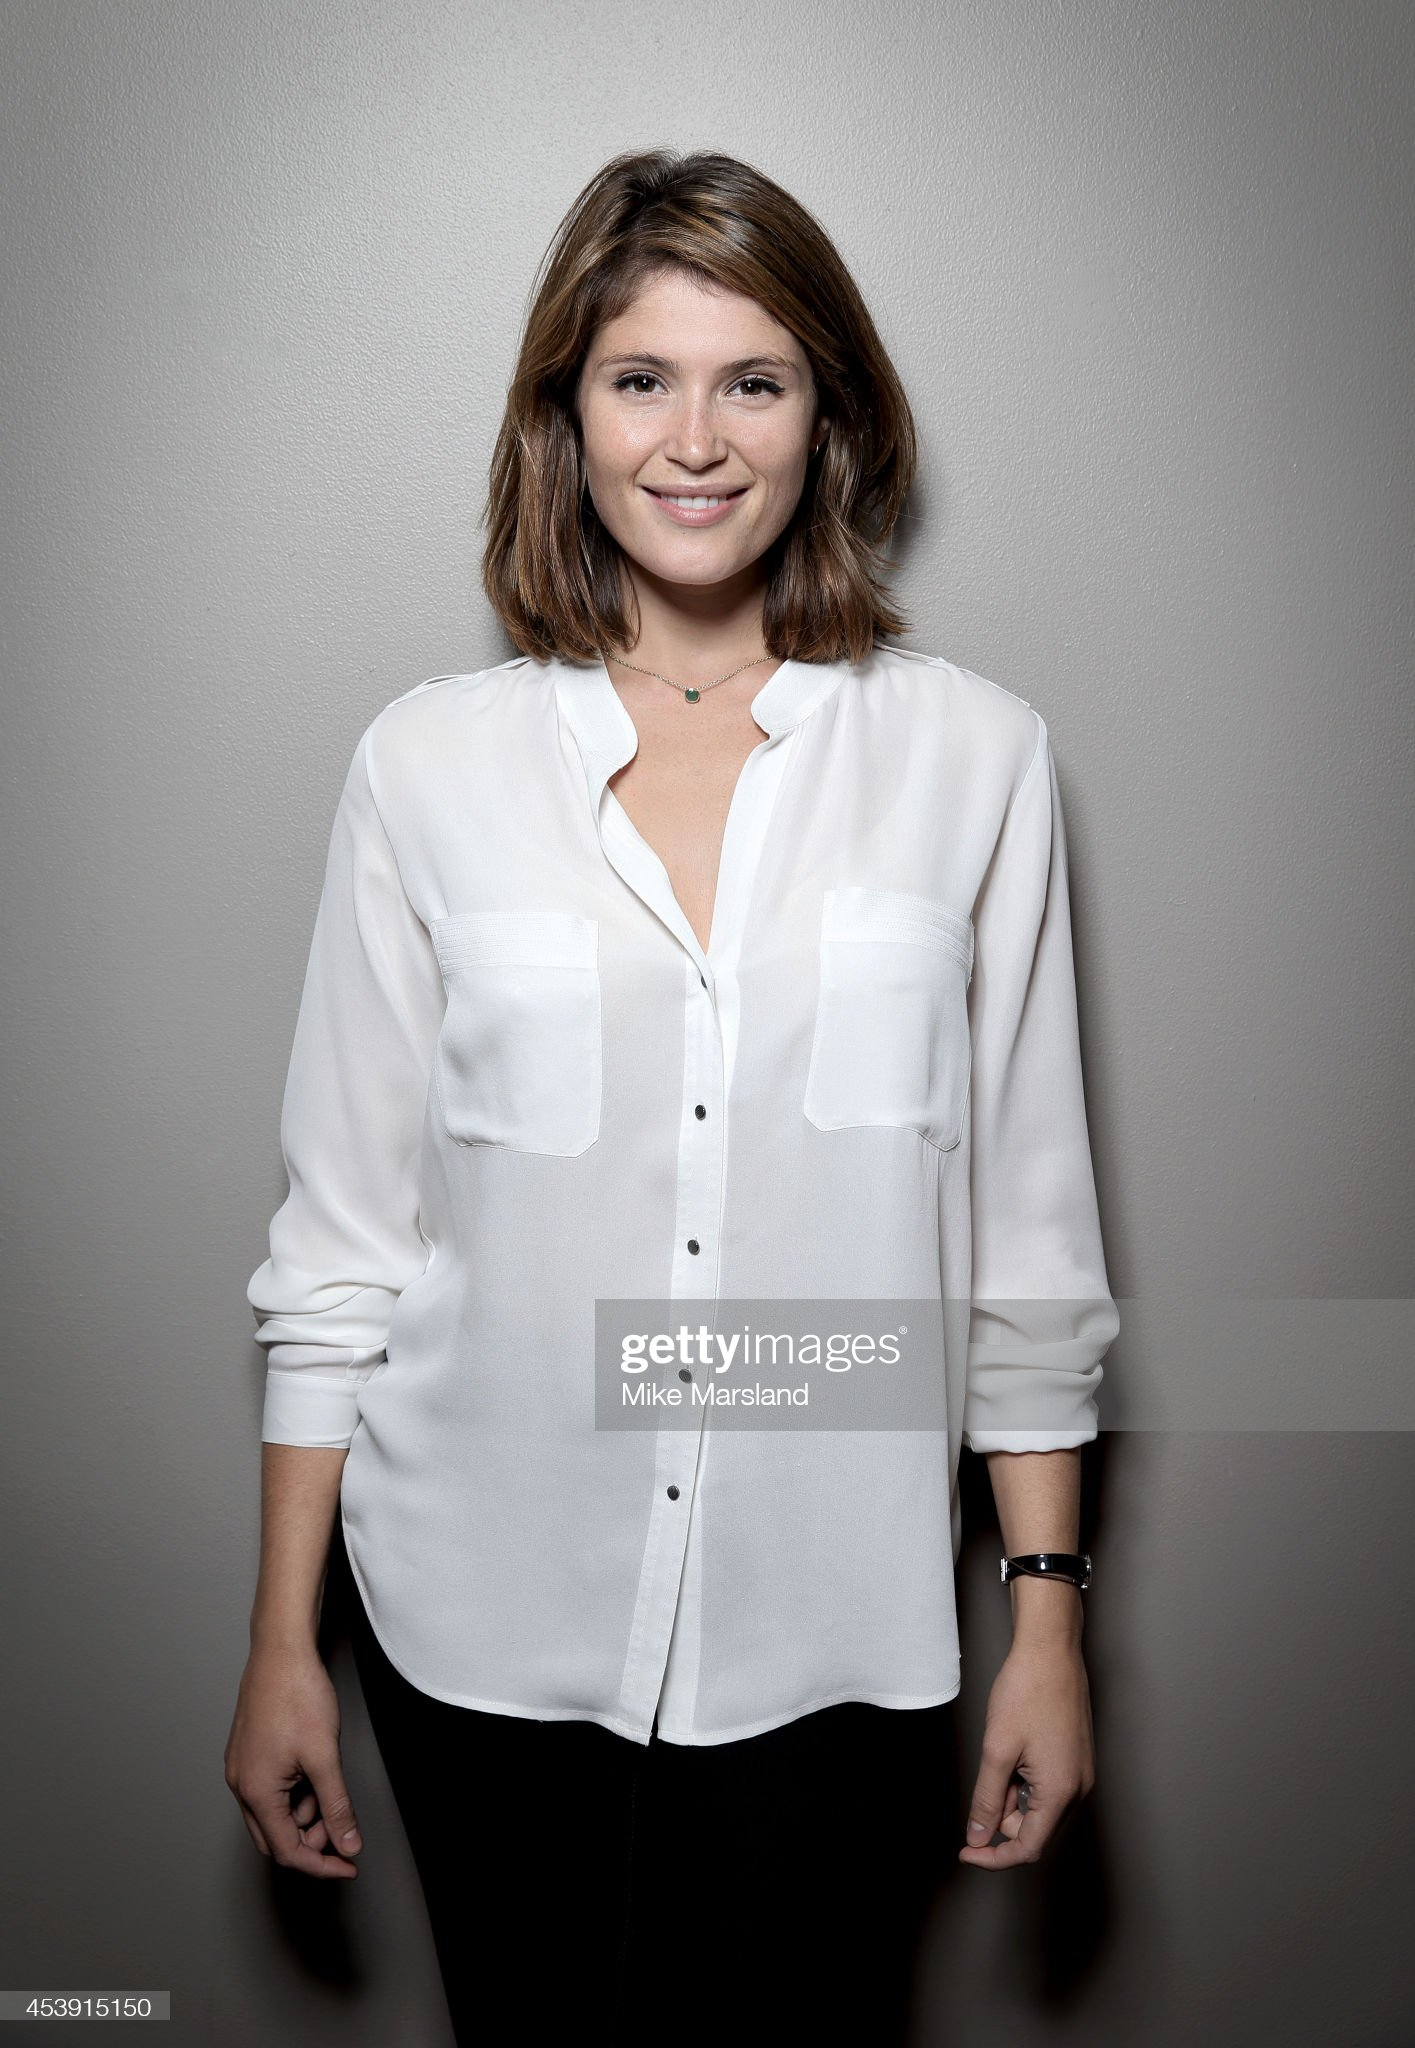 actress-gemma-arterton-is-photographed-at-the-bfi-southbank-the-film-picture-id453915150